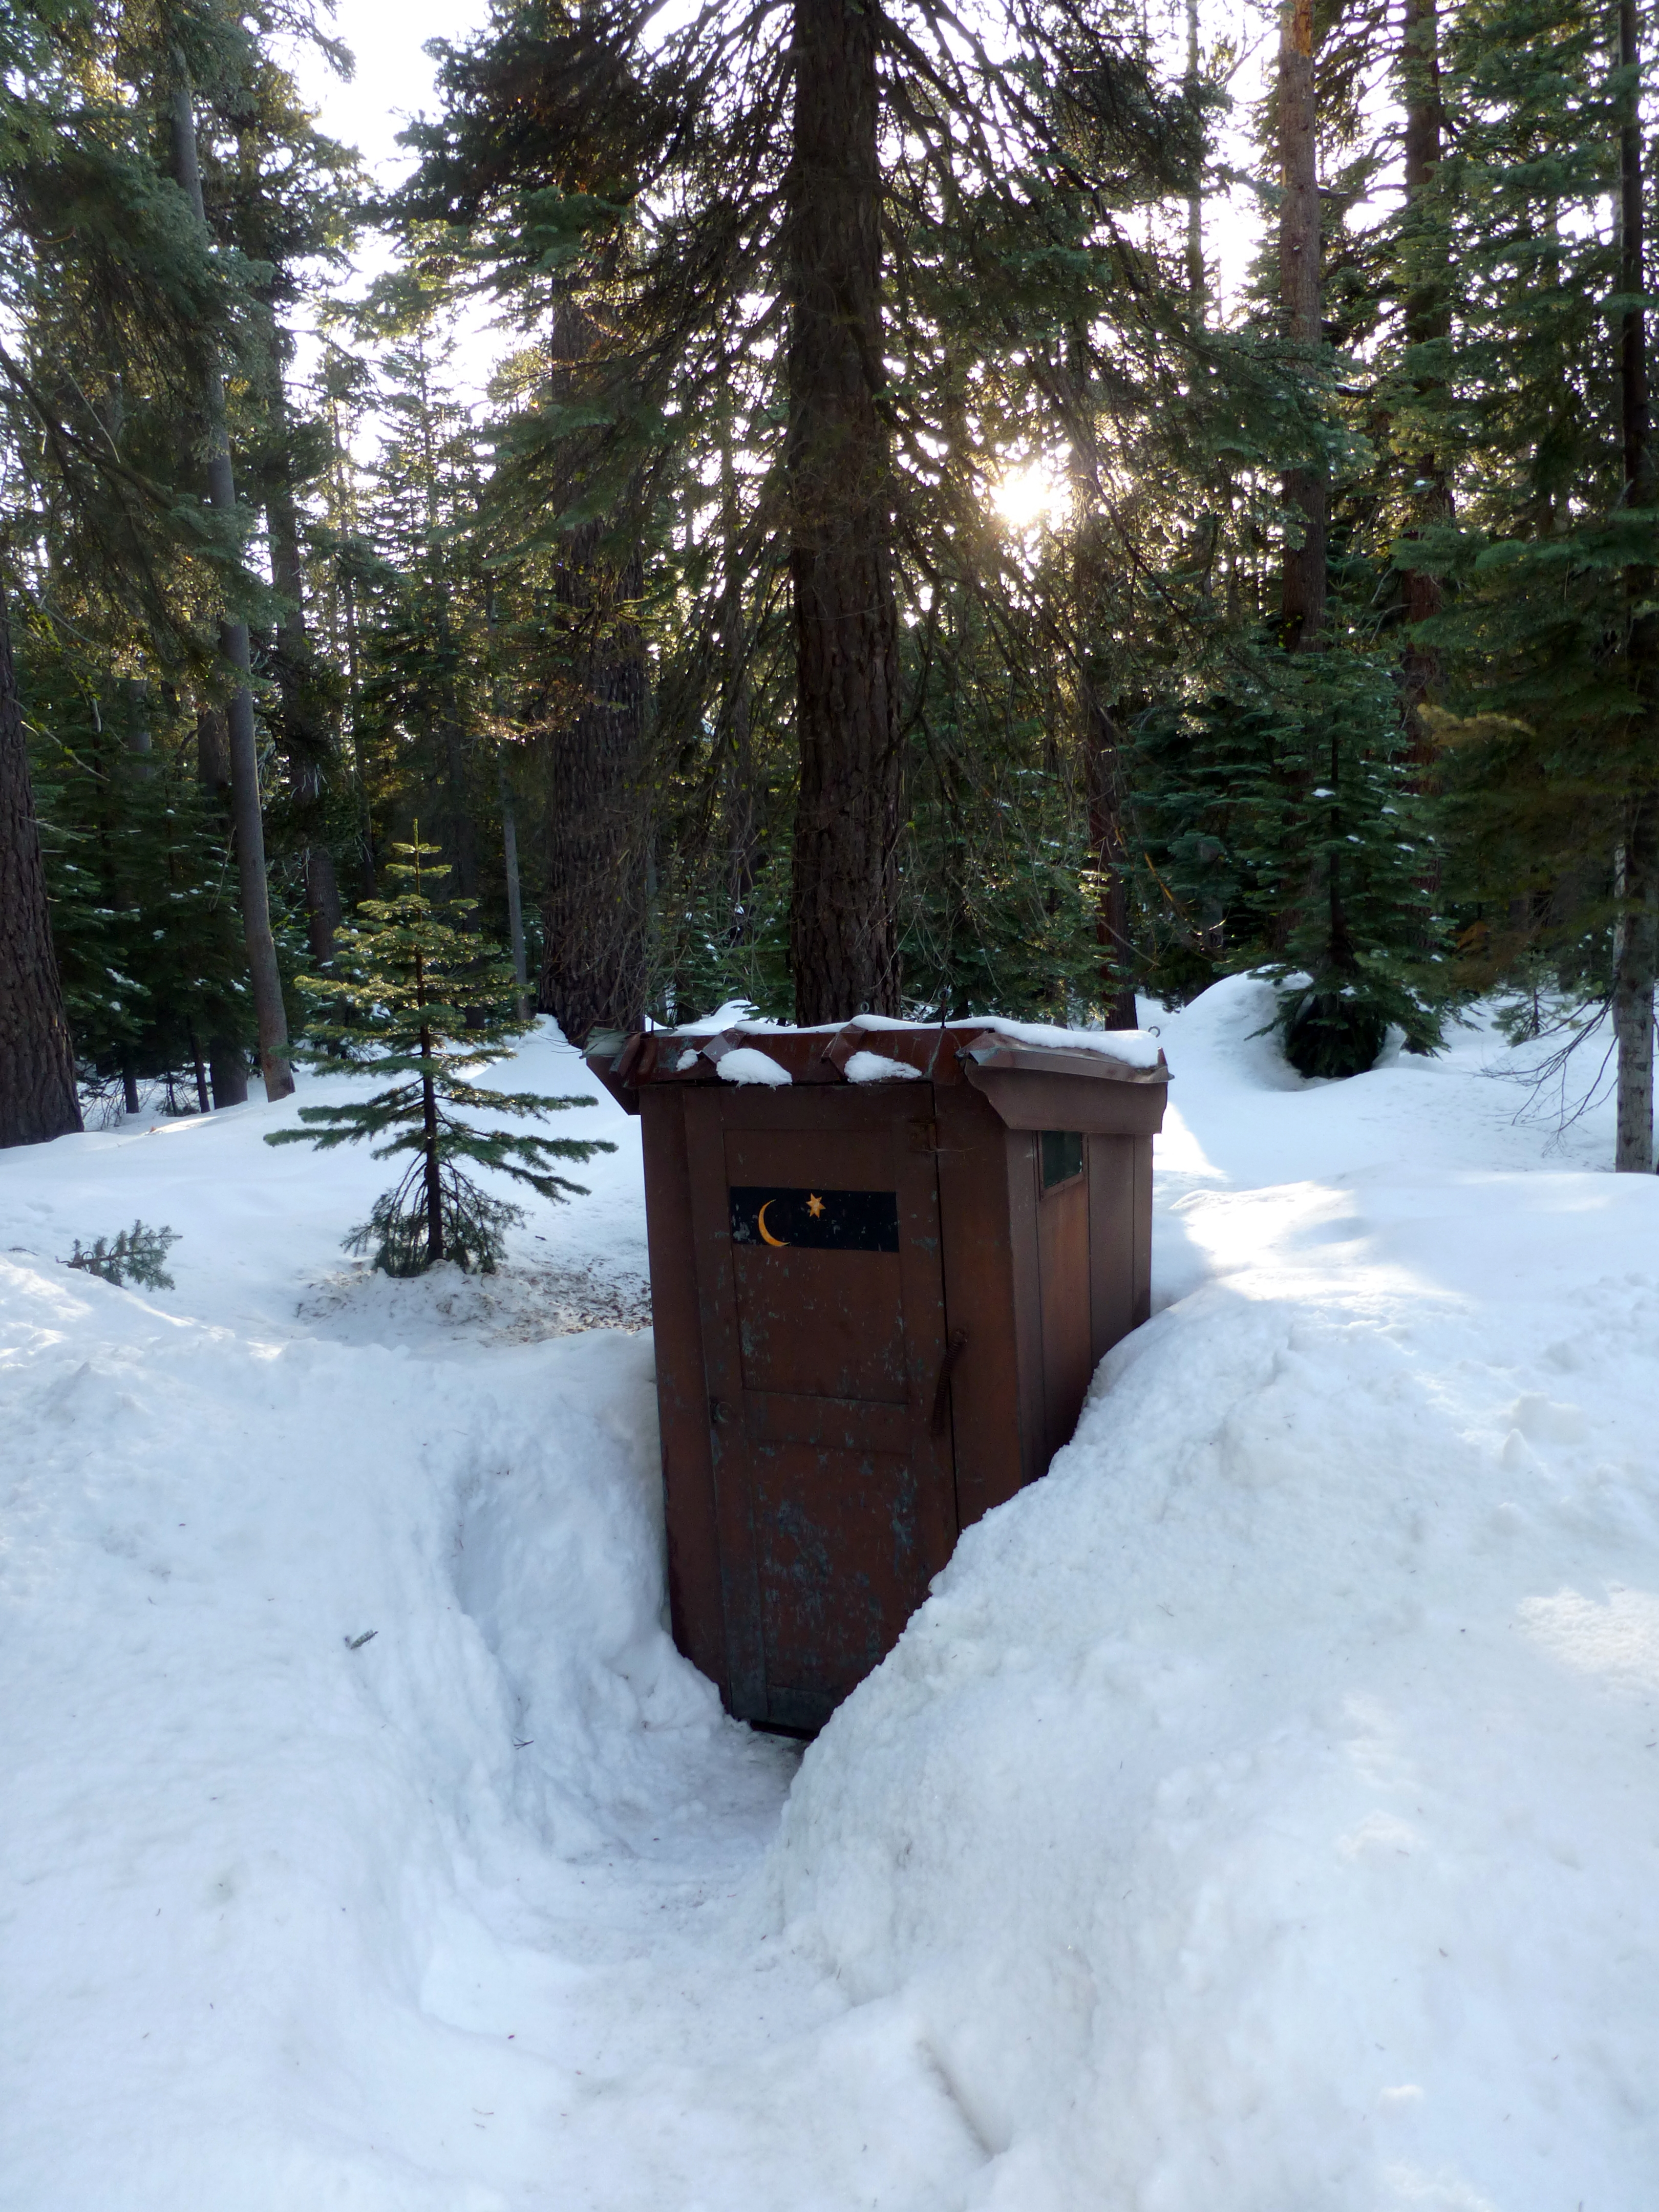 Do I smell? I smell home cooking. It's only the outhouse, only the outhouse. Good place to get some thinking done. (photo by D. Speredelozzi)